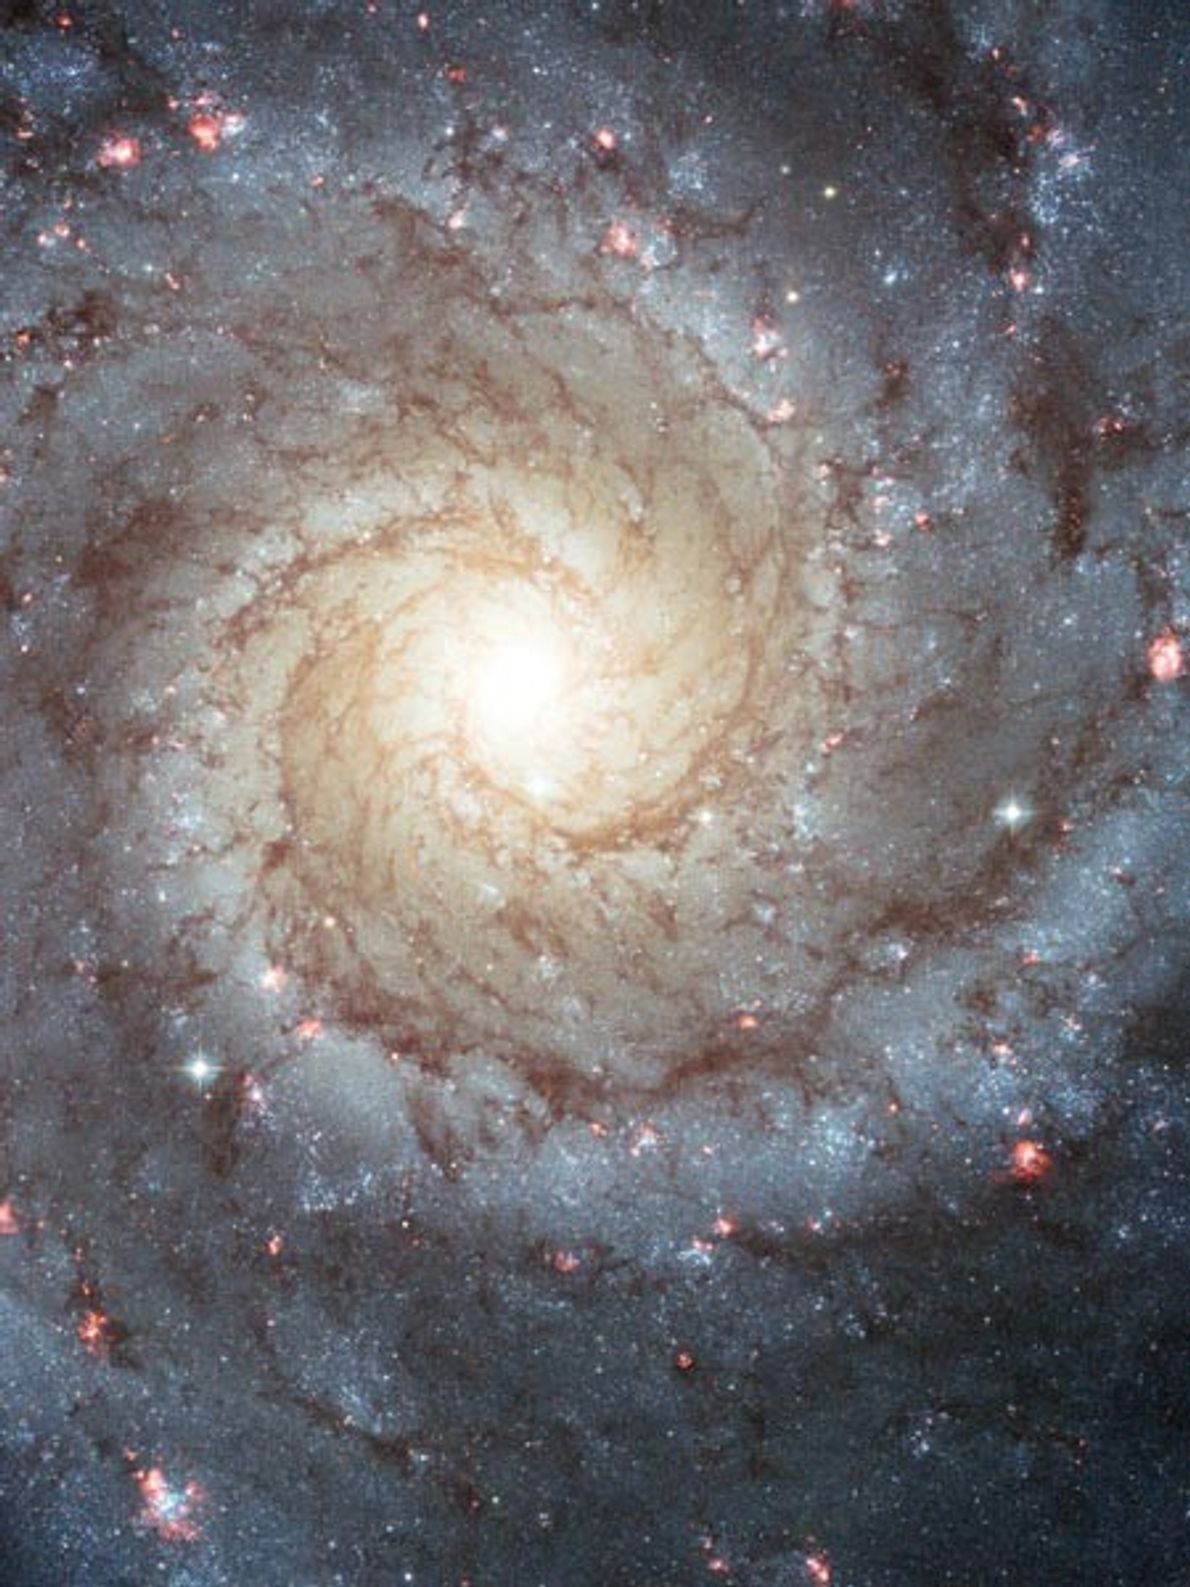 This image of the Whirlpool galaxy shows the classic features of a spiral galaxy: curving outer ...